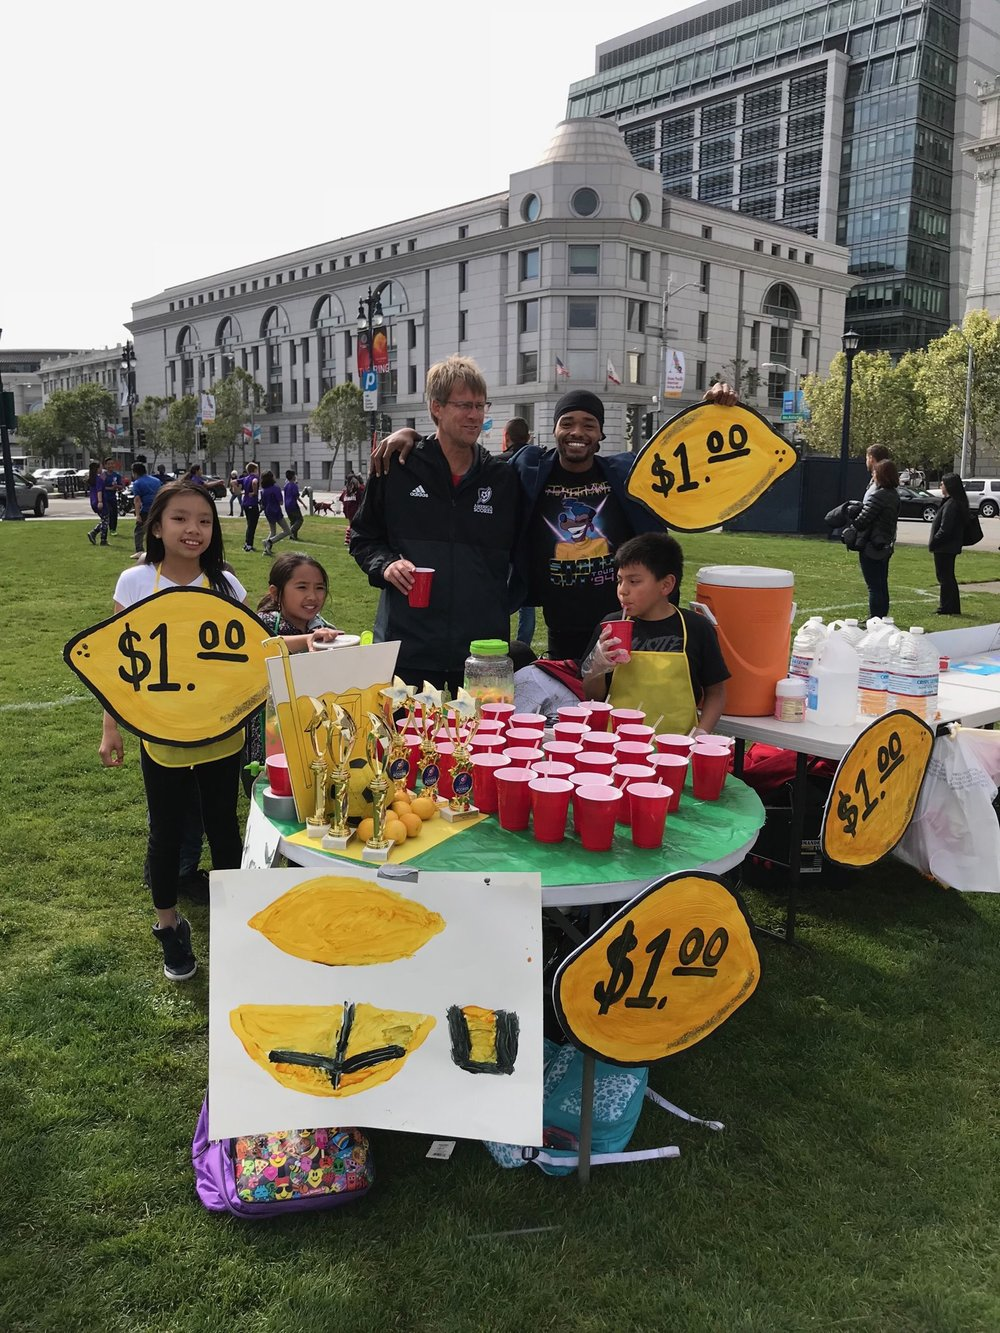 The Tenderloin Recreation Center team with Coach Marquis and SCORES CEO Colin Schmidt sell lemonade at game day to raise money for Glide Memorial Church.